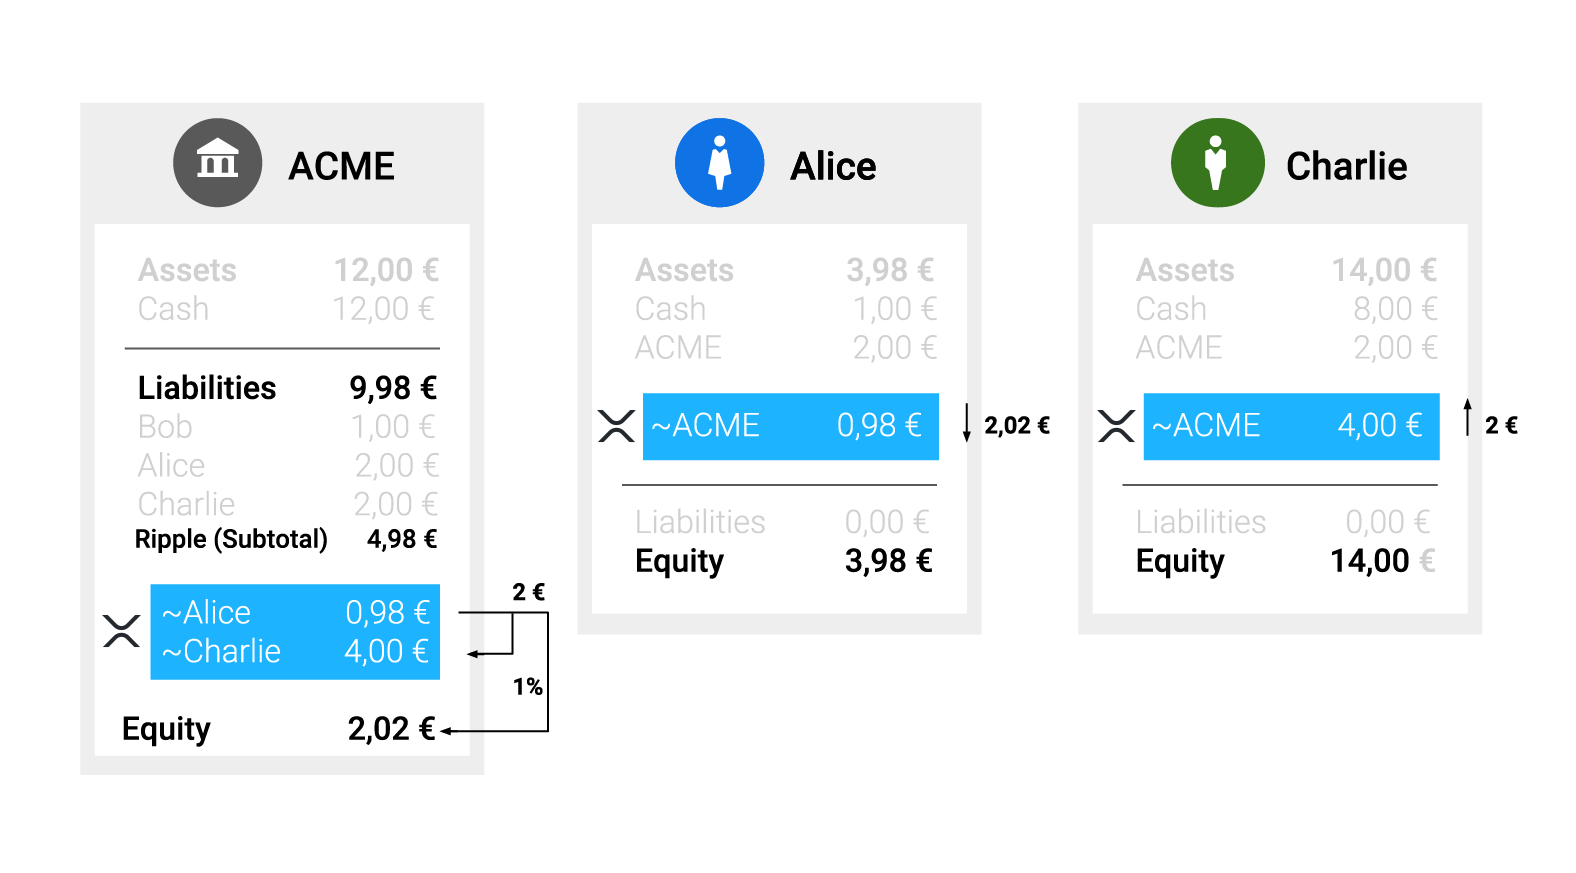 Alice sends 2,02€, Charlie receives 2,00€, and ACME owes 0,02€ less in the XRP Ledger